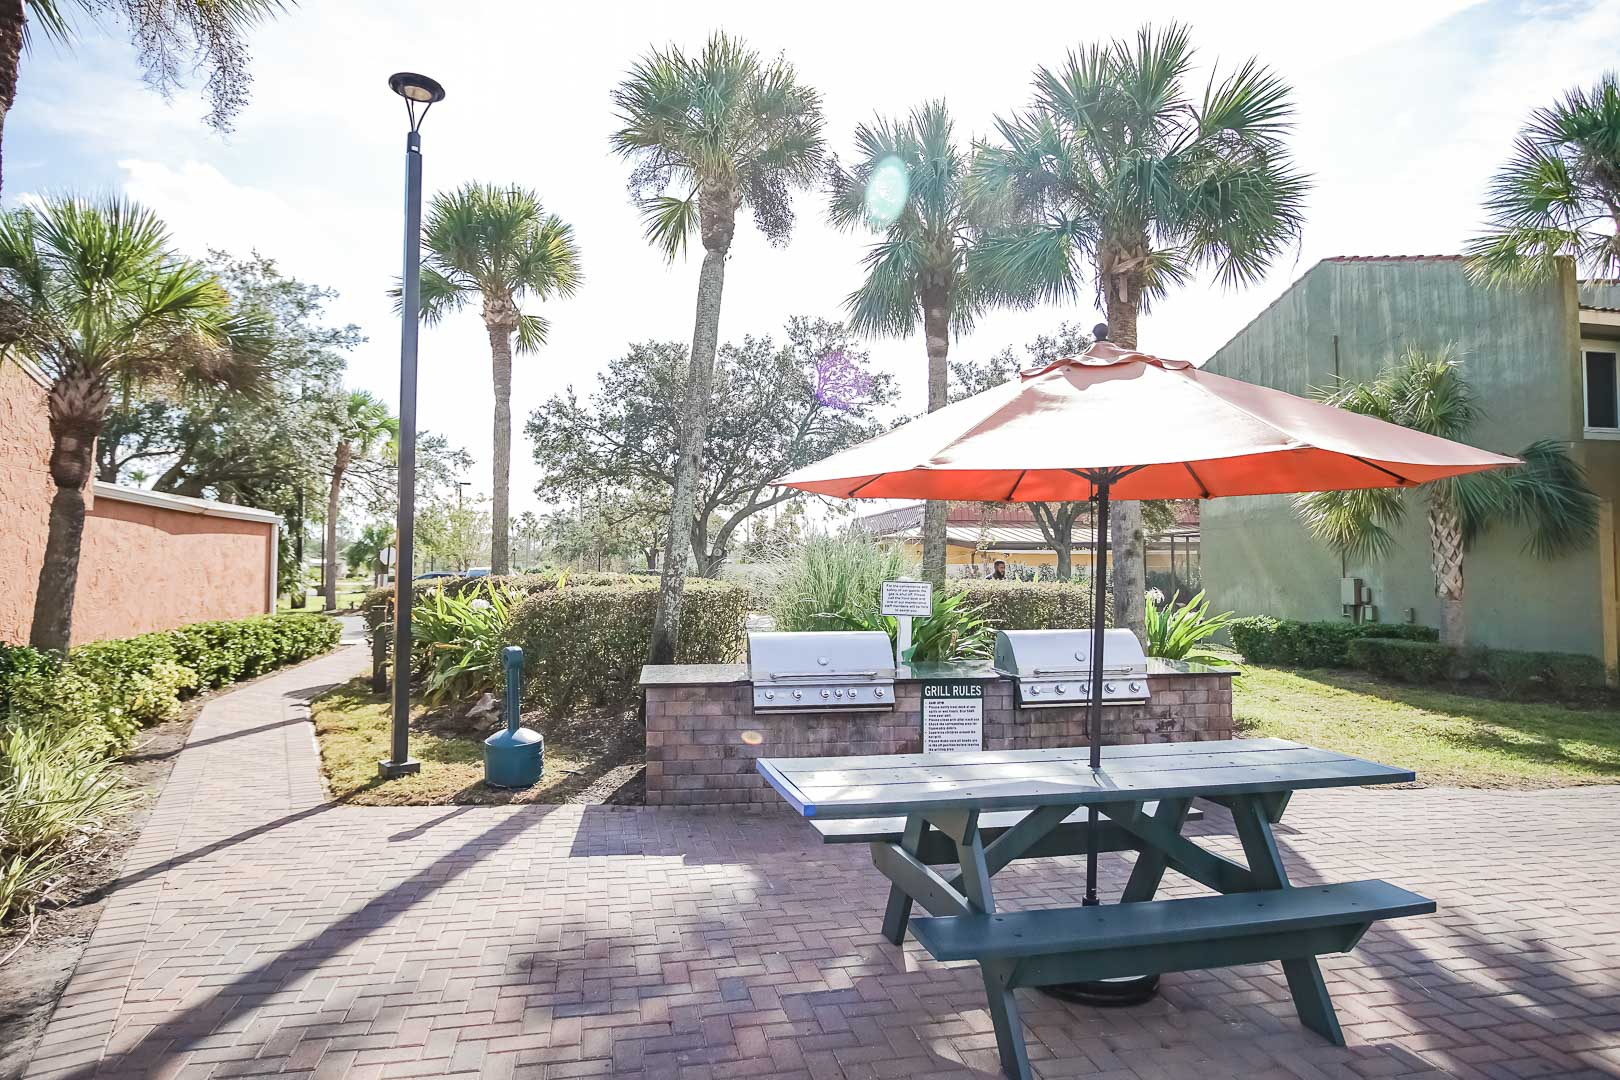 BBQ grills and sitting area at VRI's Fantasy World Resort in Florida.